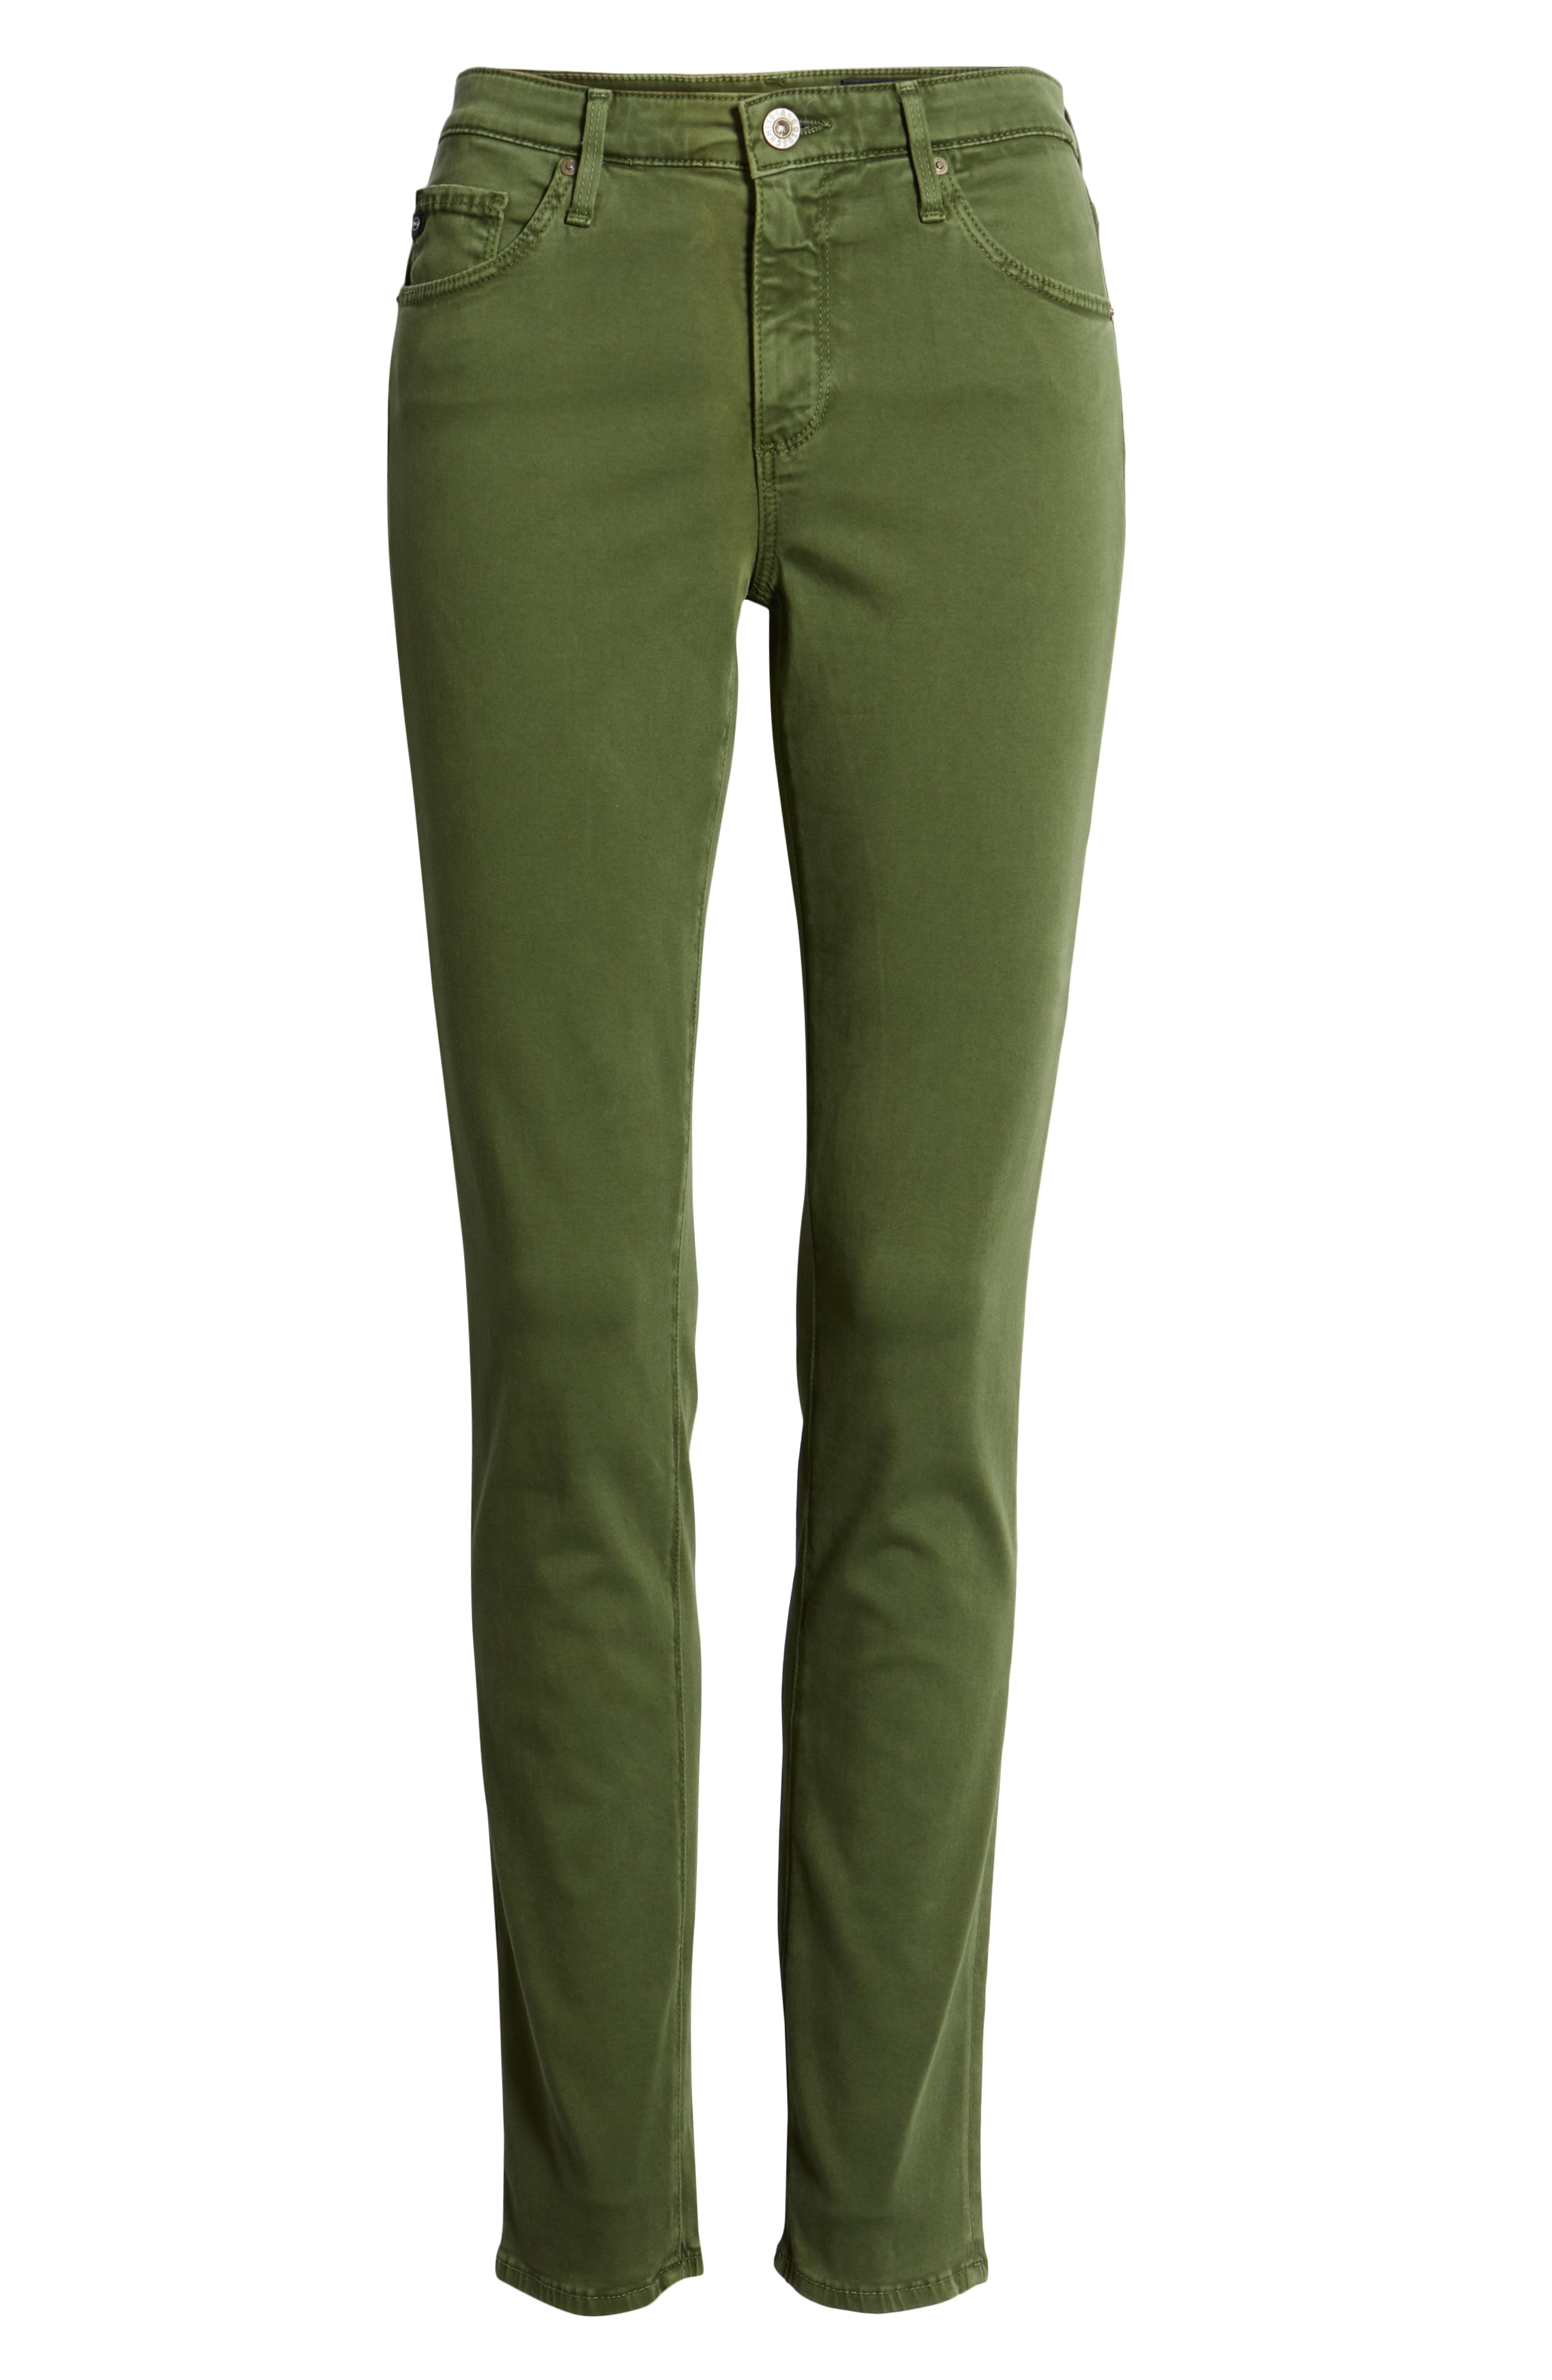 Women's Green Jeans & Denim | Nordstrom